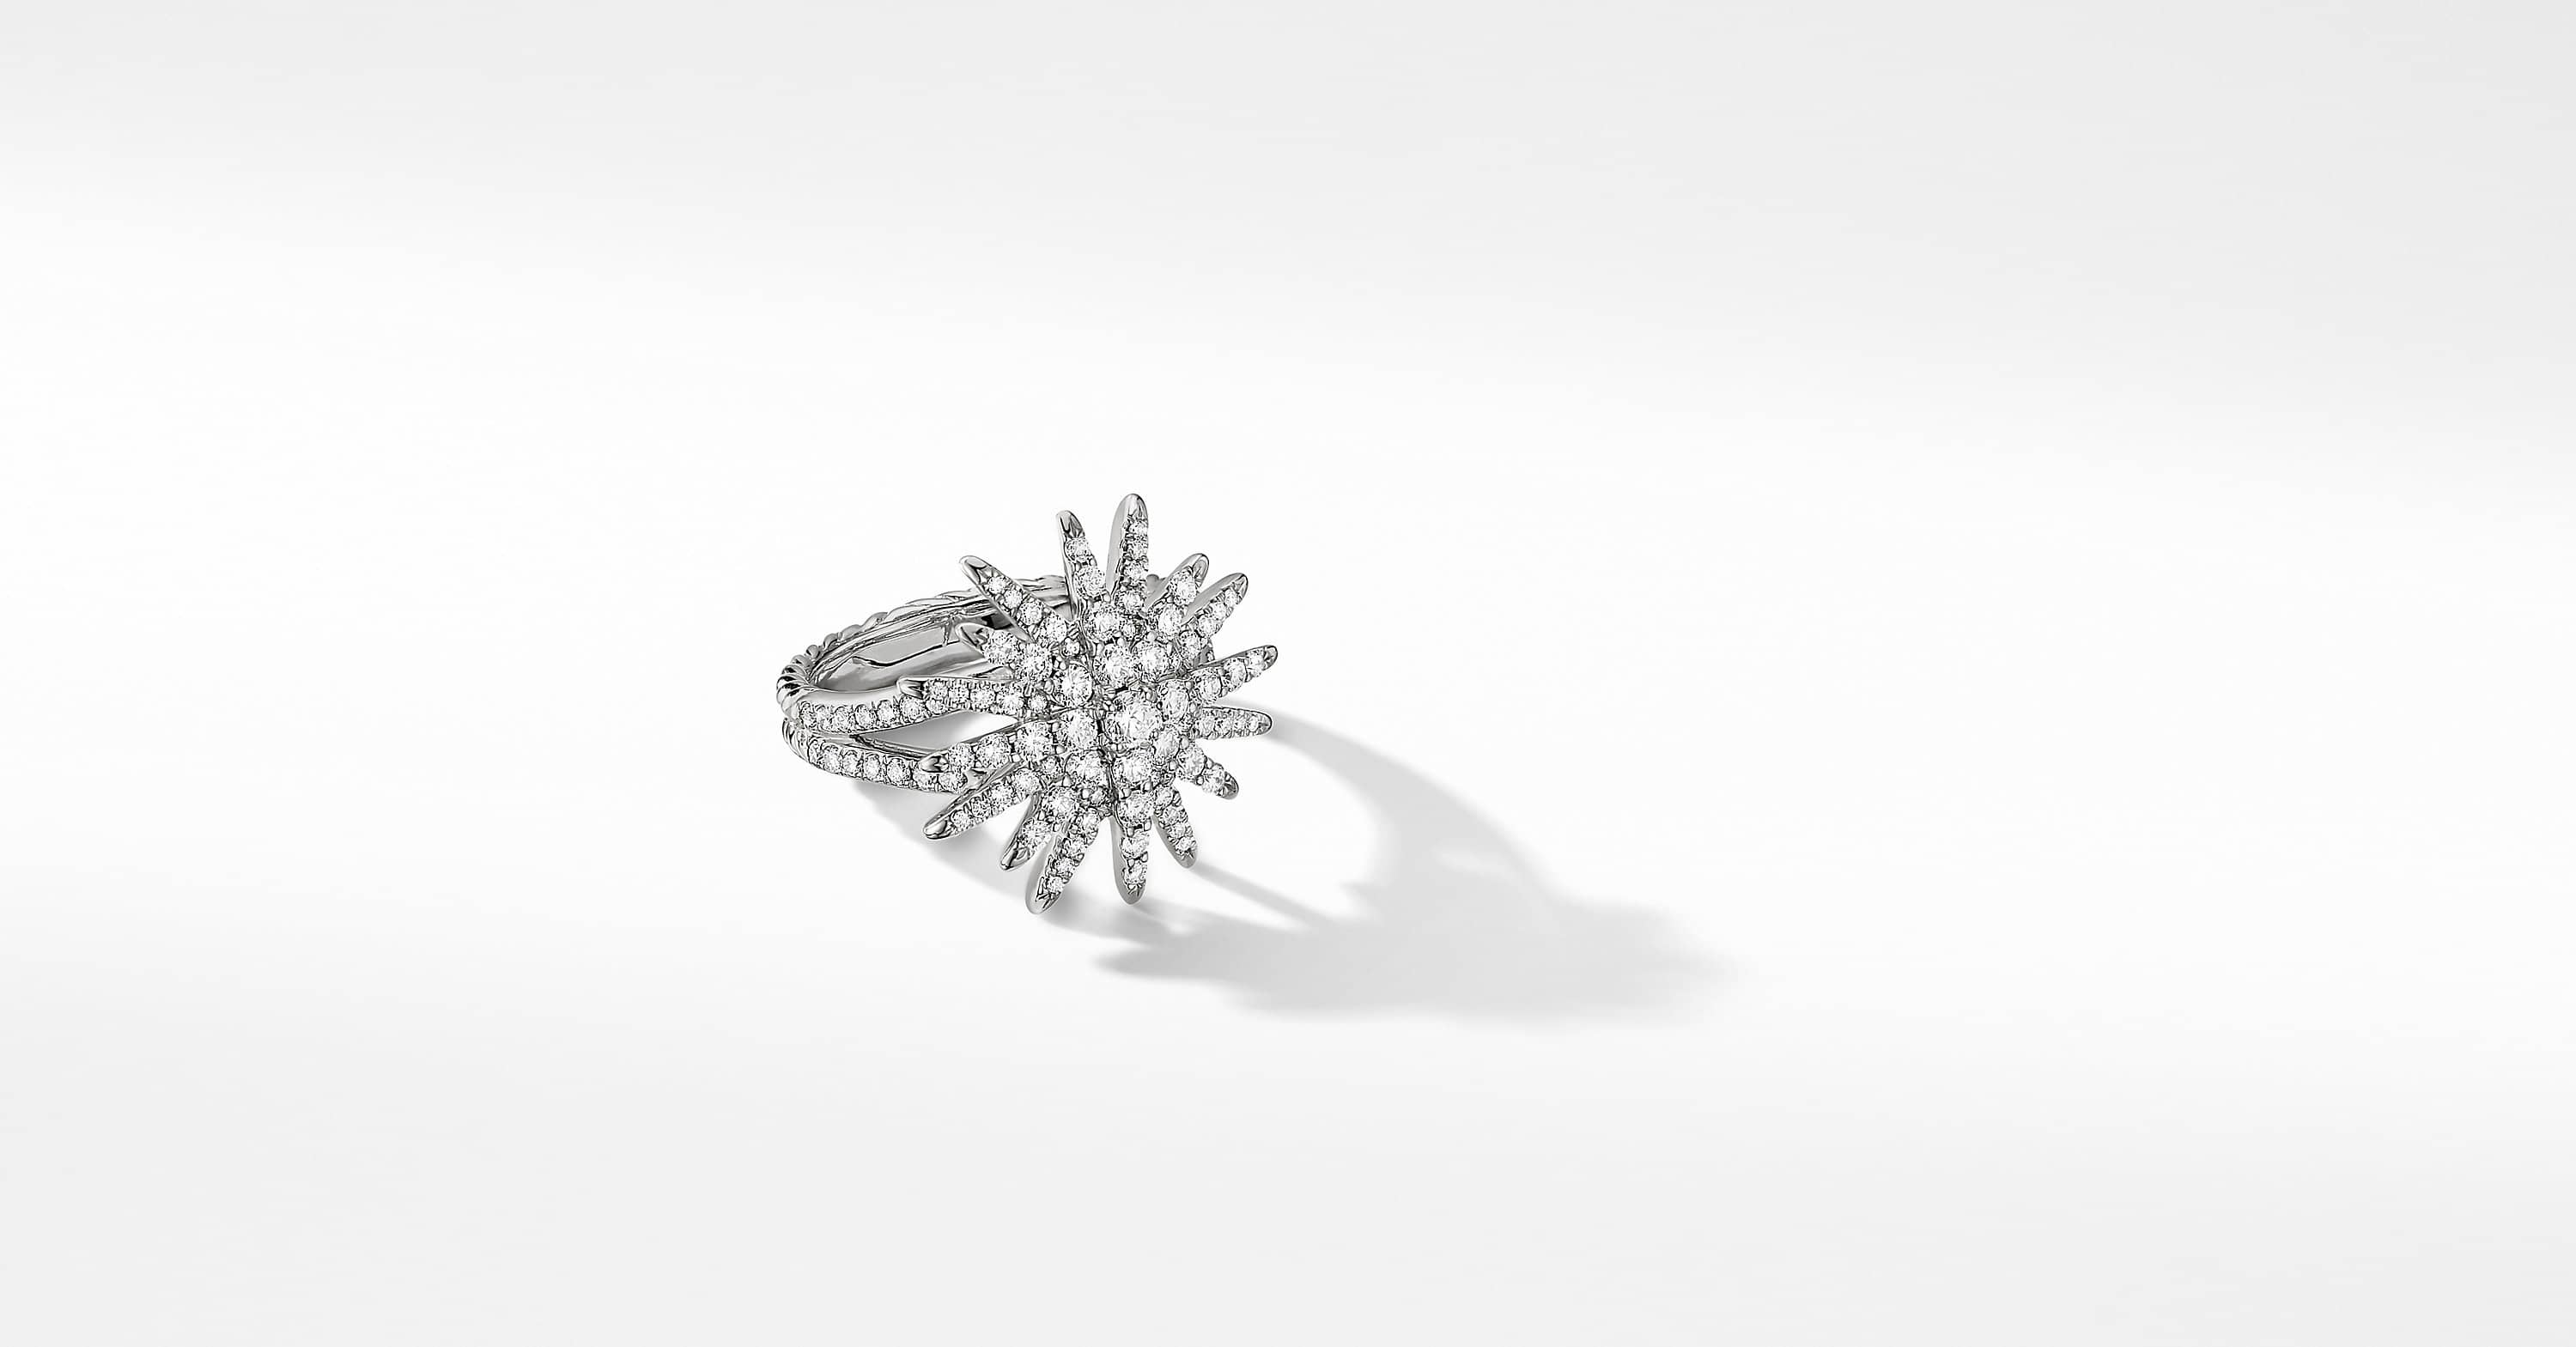 Starburst Ring in 18K White Gold with Full Pavé, 20mm